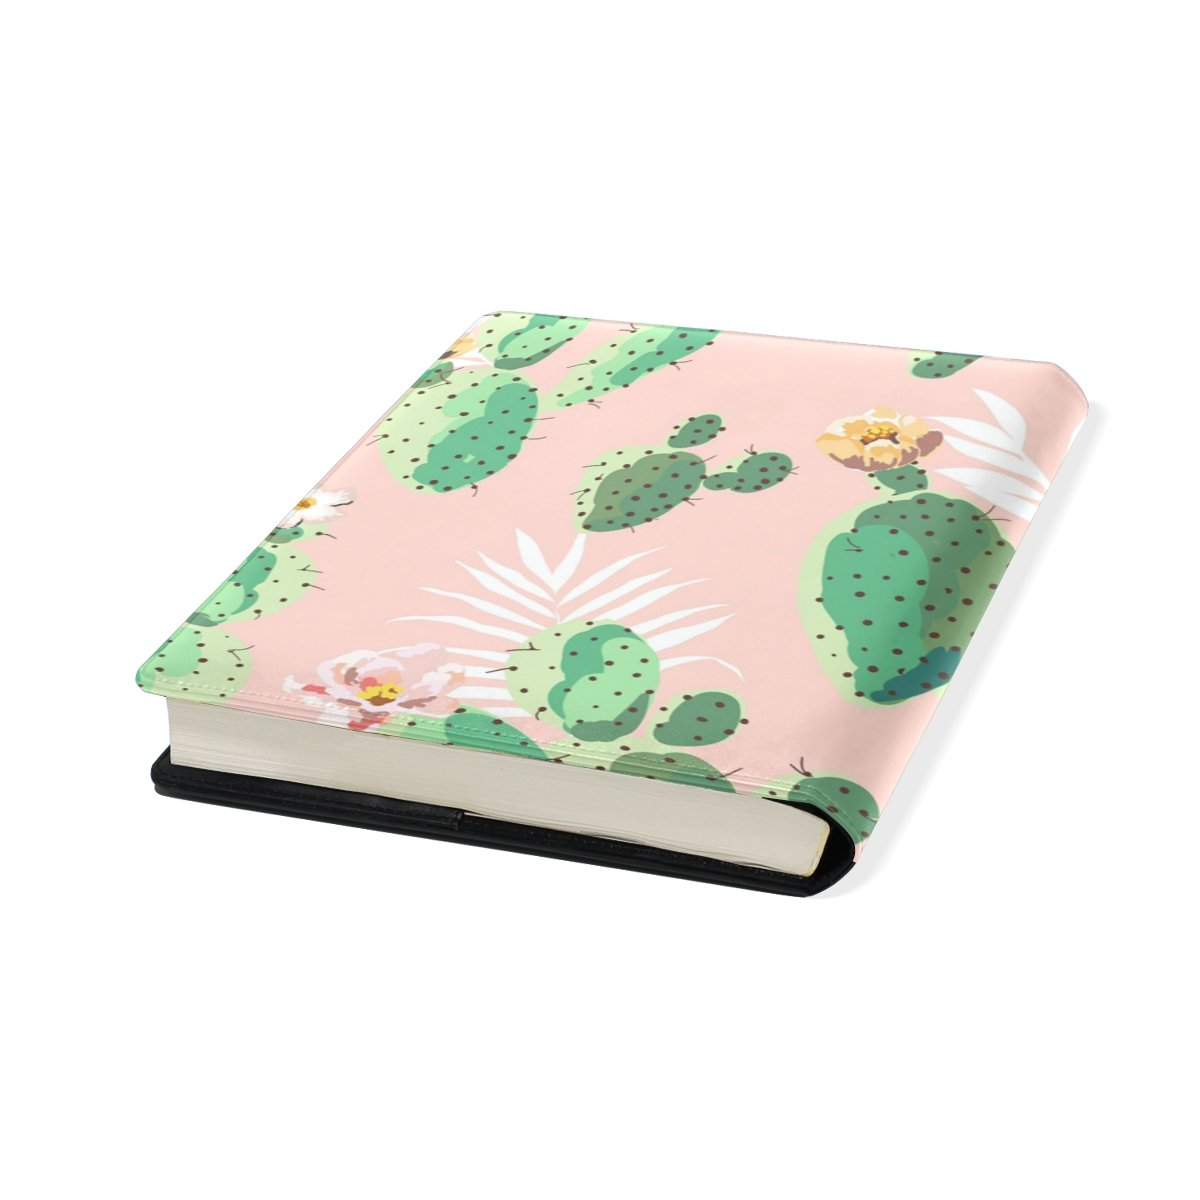 Cacti Stretchable Leather Book Covers Standard Size for Student Hardcover Textbooks Fits up to 9x11-Inch for School Girls Boys Gift